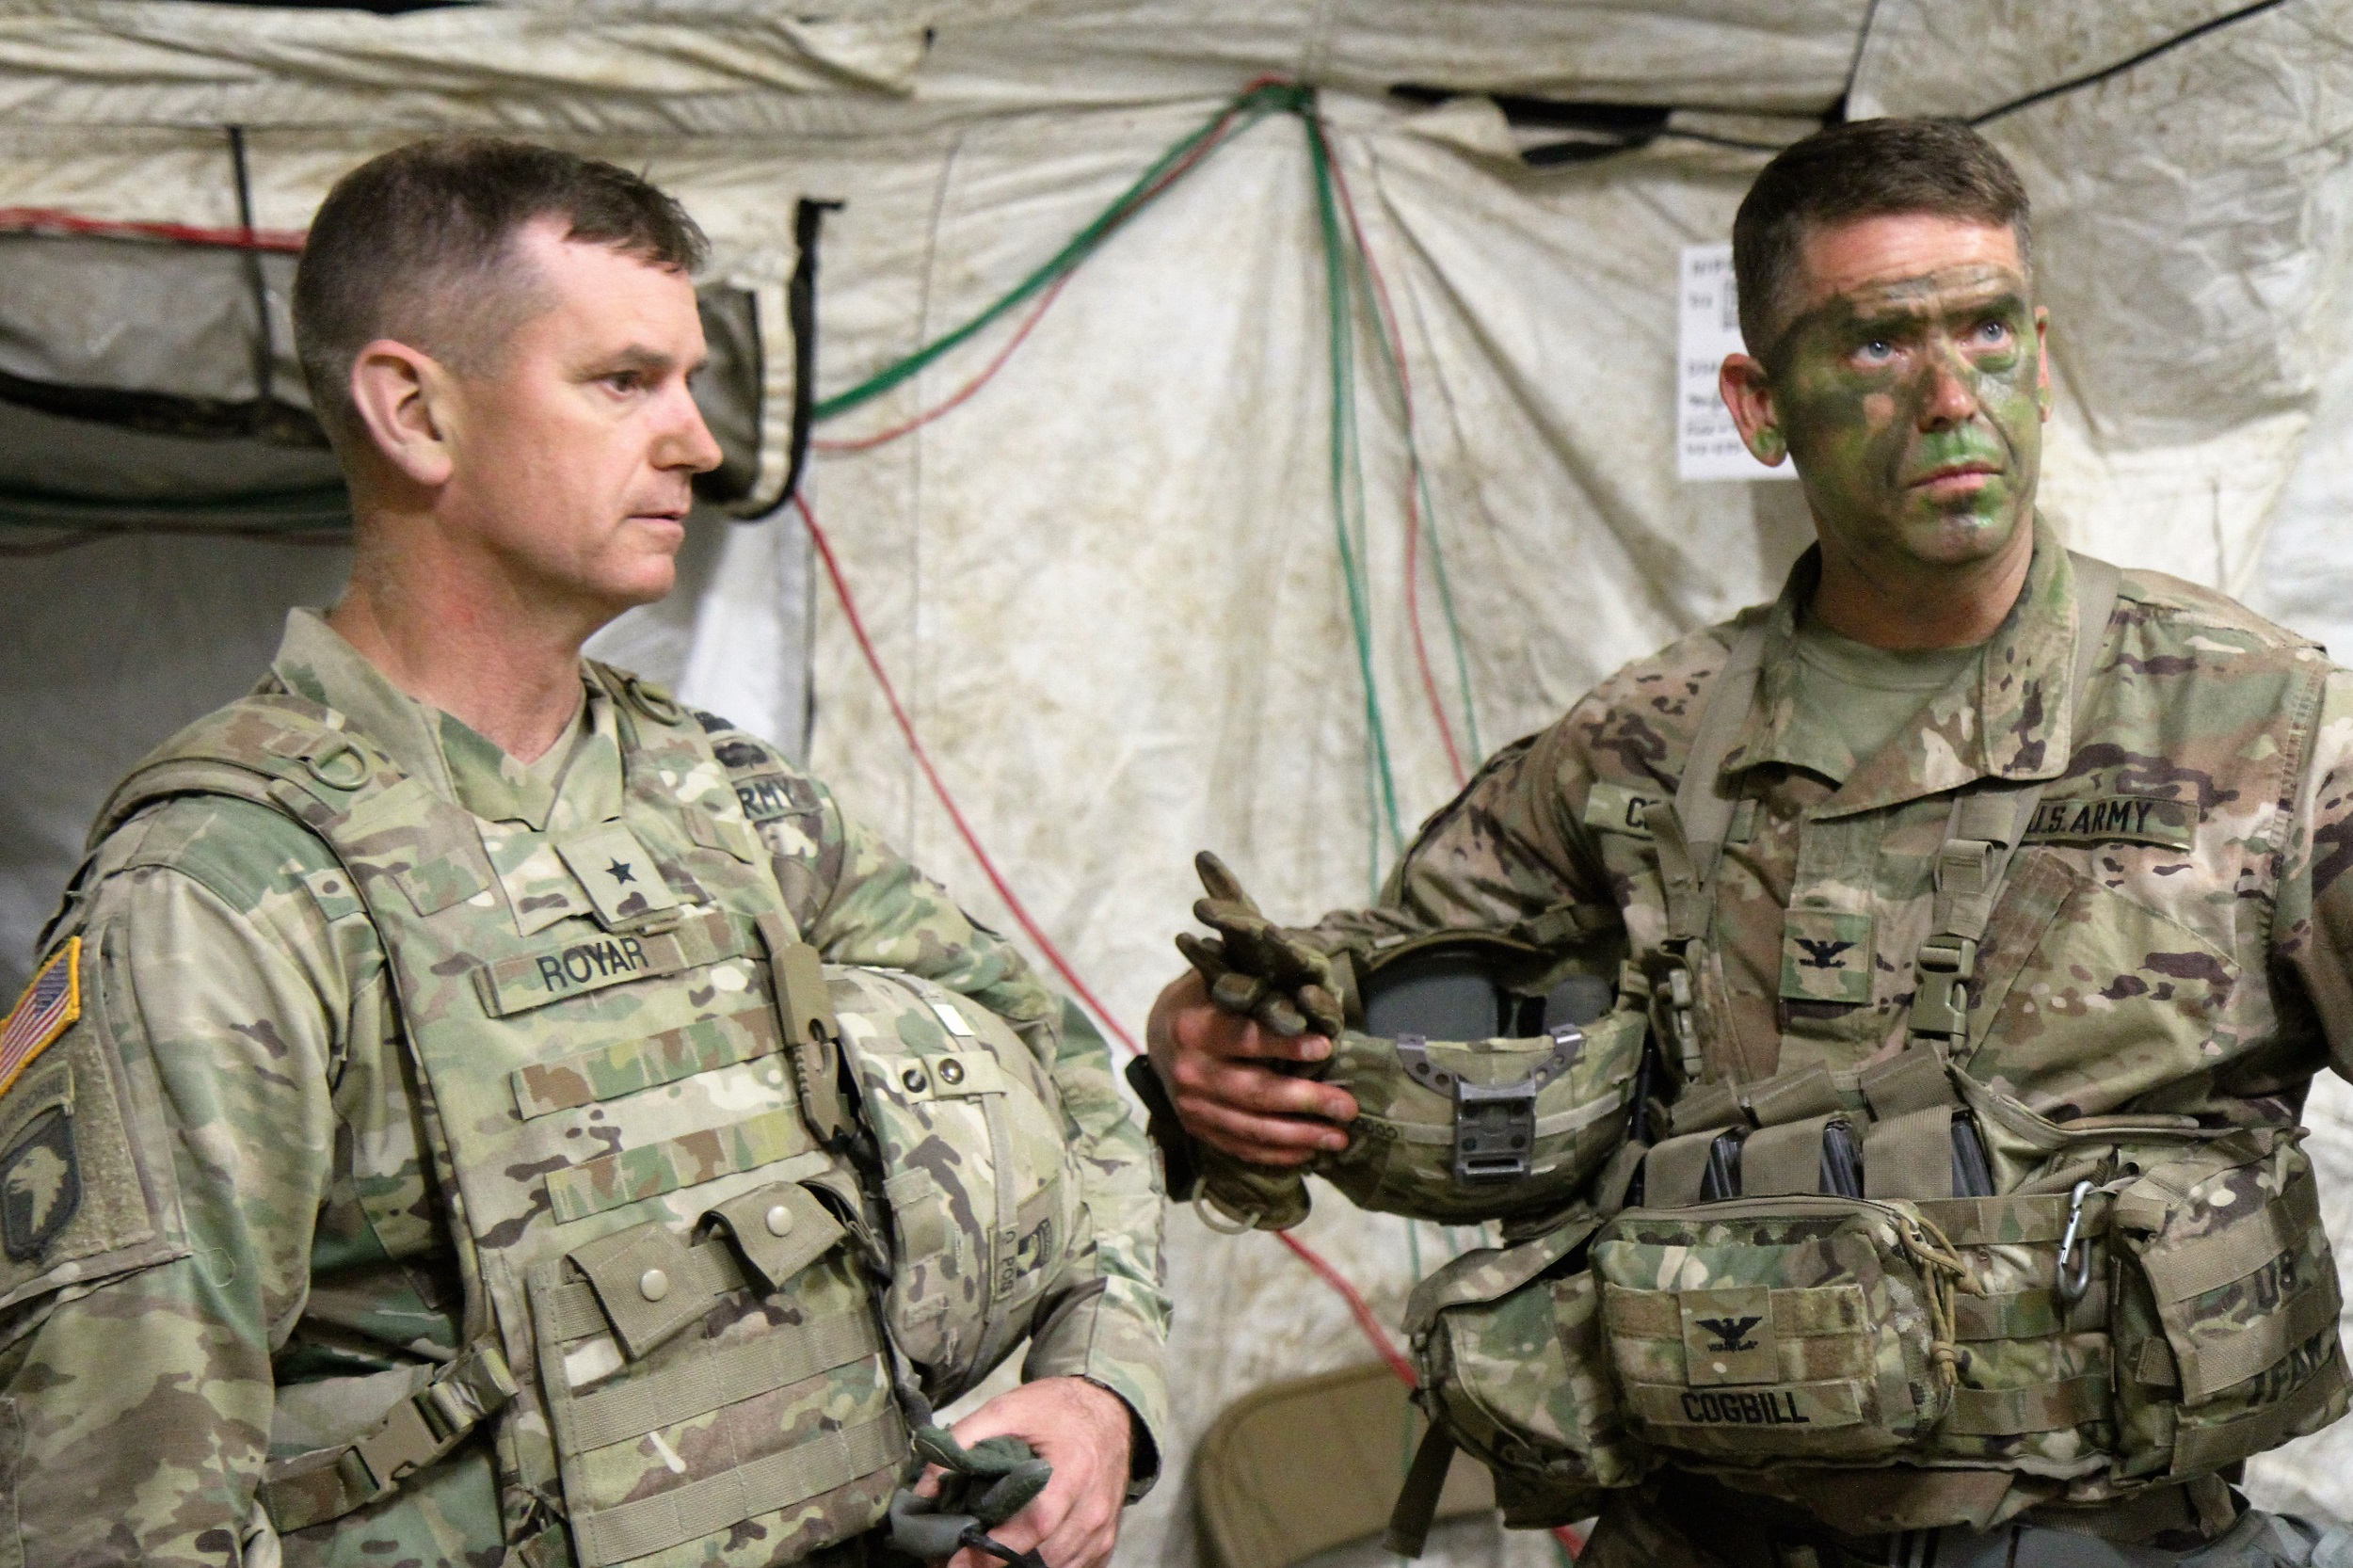 Col. John Cogbill (right) and Brig. Gen. K. Todd Royar, the 101st Airborne Division Deputy Commanding General, Support, discuss 3BCT training inside the 3BCT Tactical Operations Center (TOC). The TOC is the location where the 3BCT Headquarters and Staff conduct battle tracking and mission planning when deployed during training events and tactical operations. (U.S. Army Photo by Staff Sgt. Cody Harding - taken May 10, 2018).